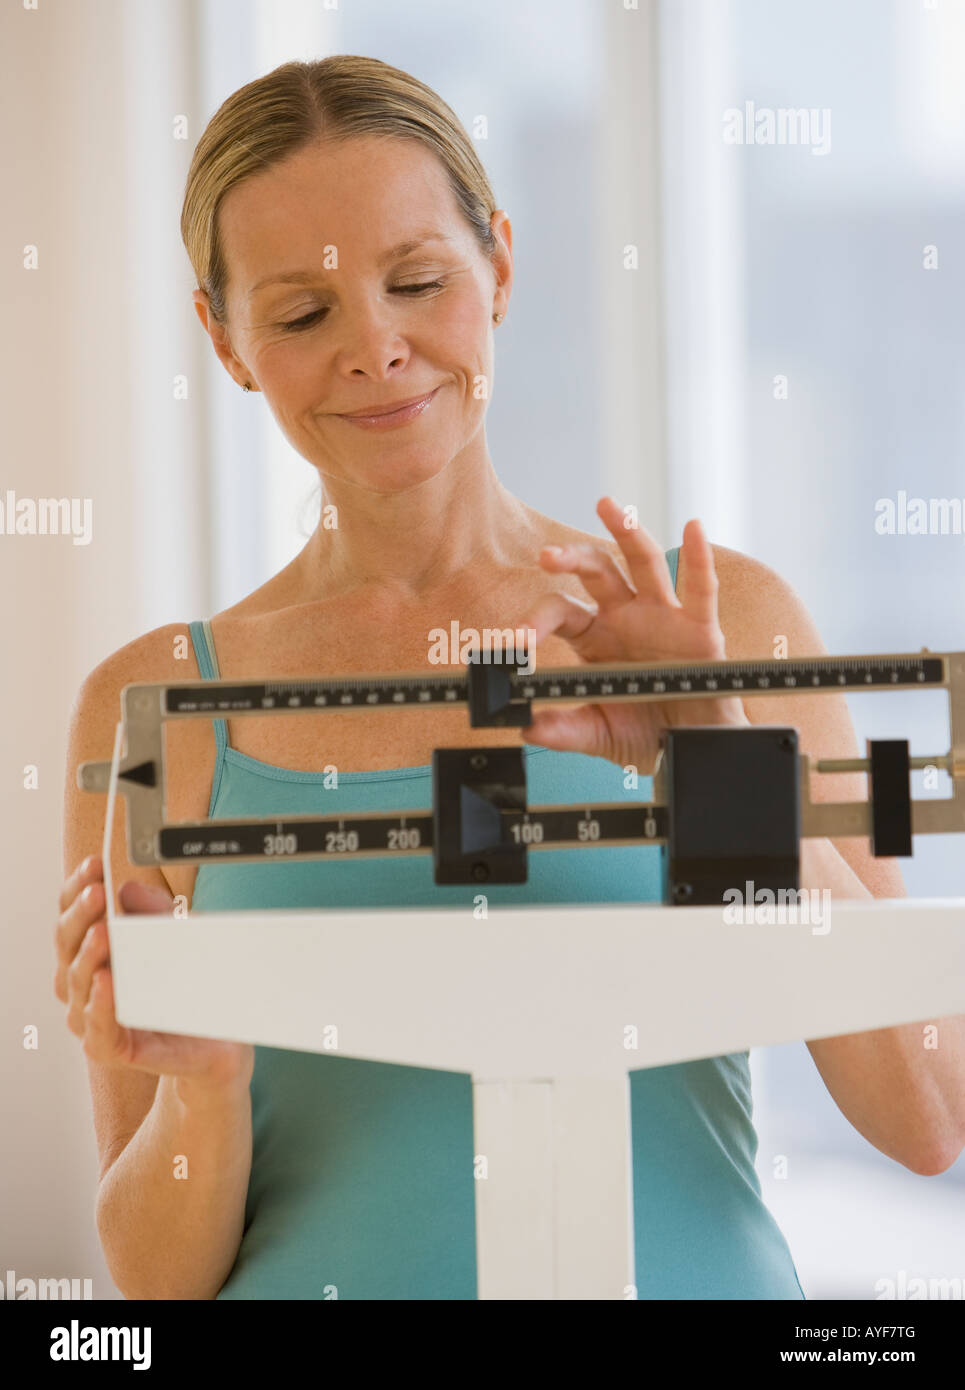 Woman weighing self on scale - Stock Image